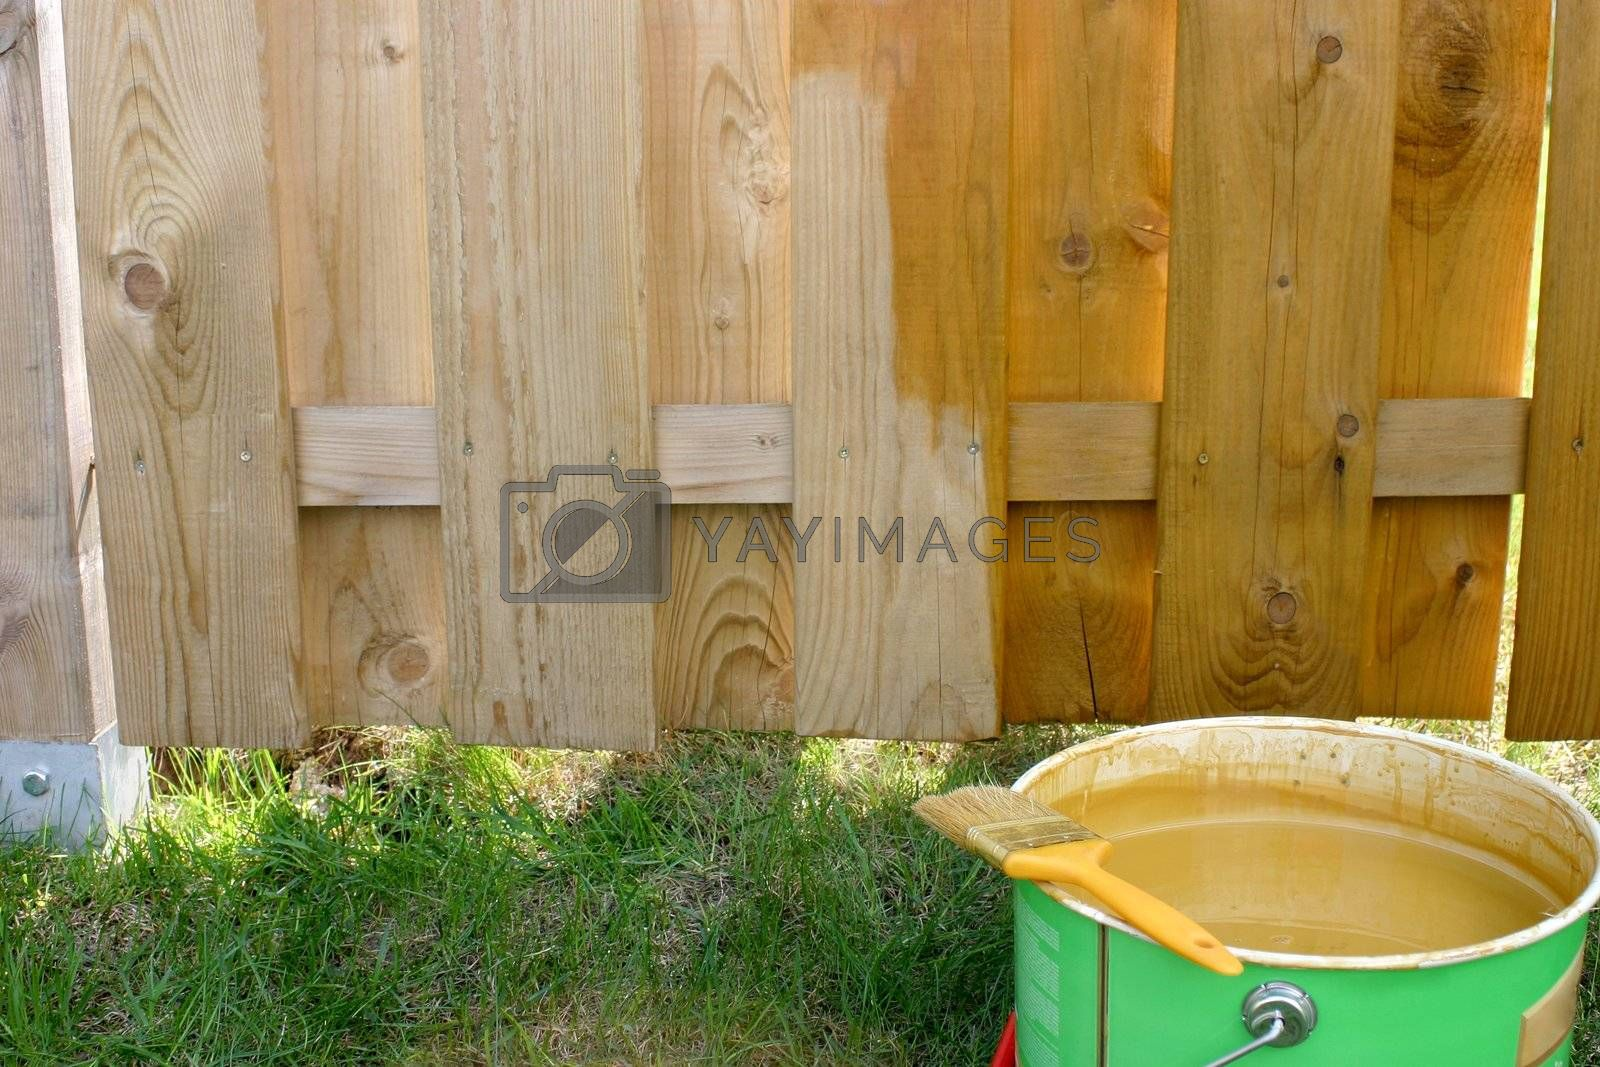 Painted fence by Cebas